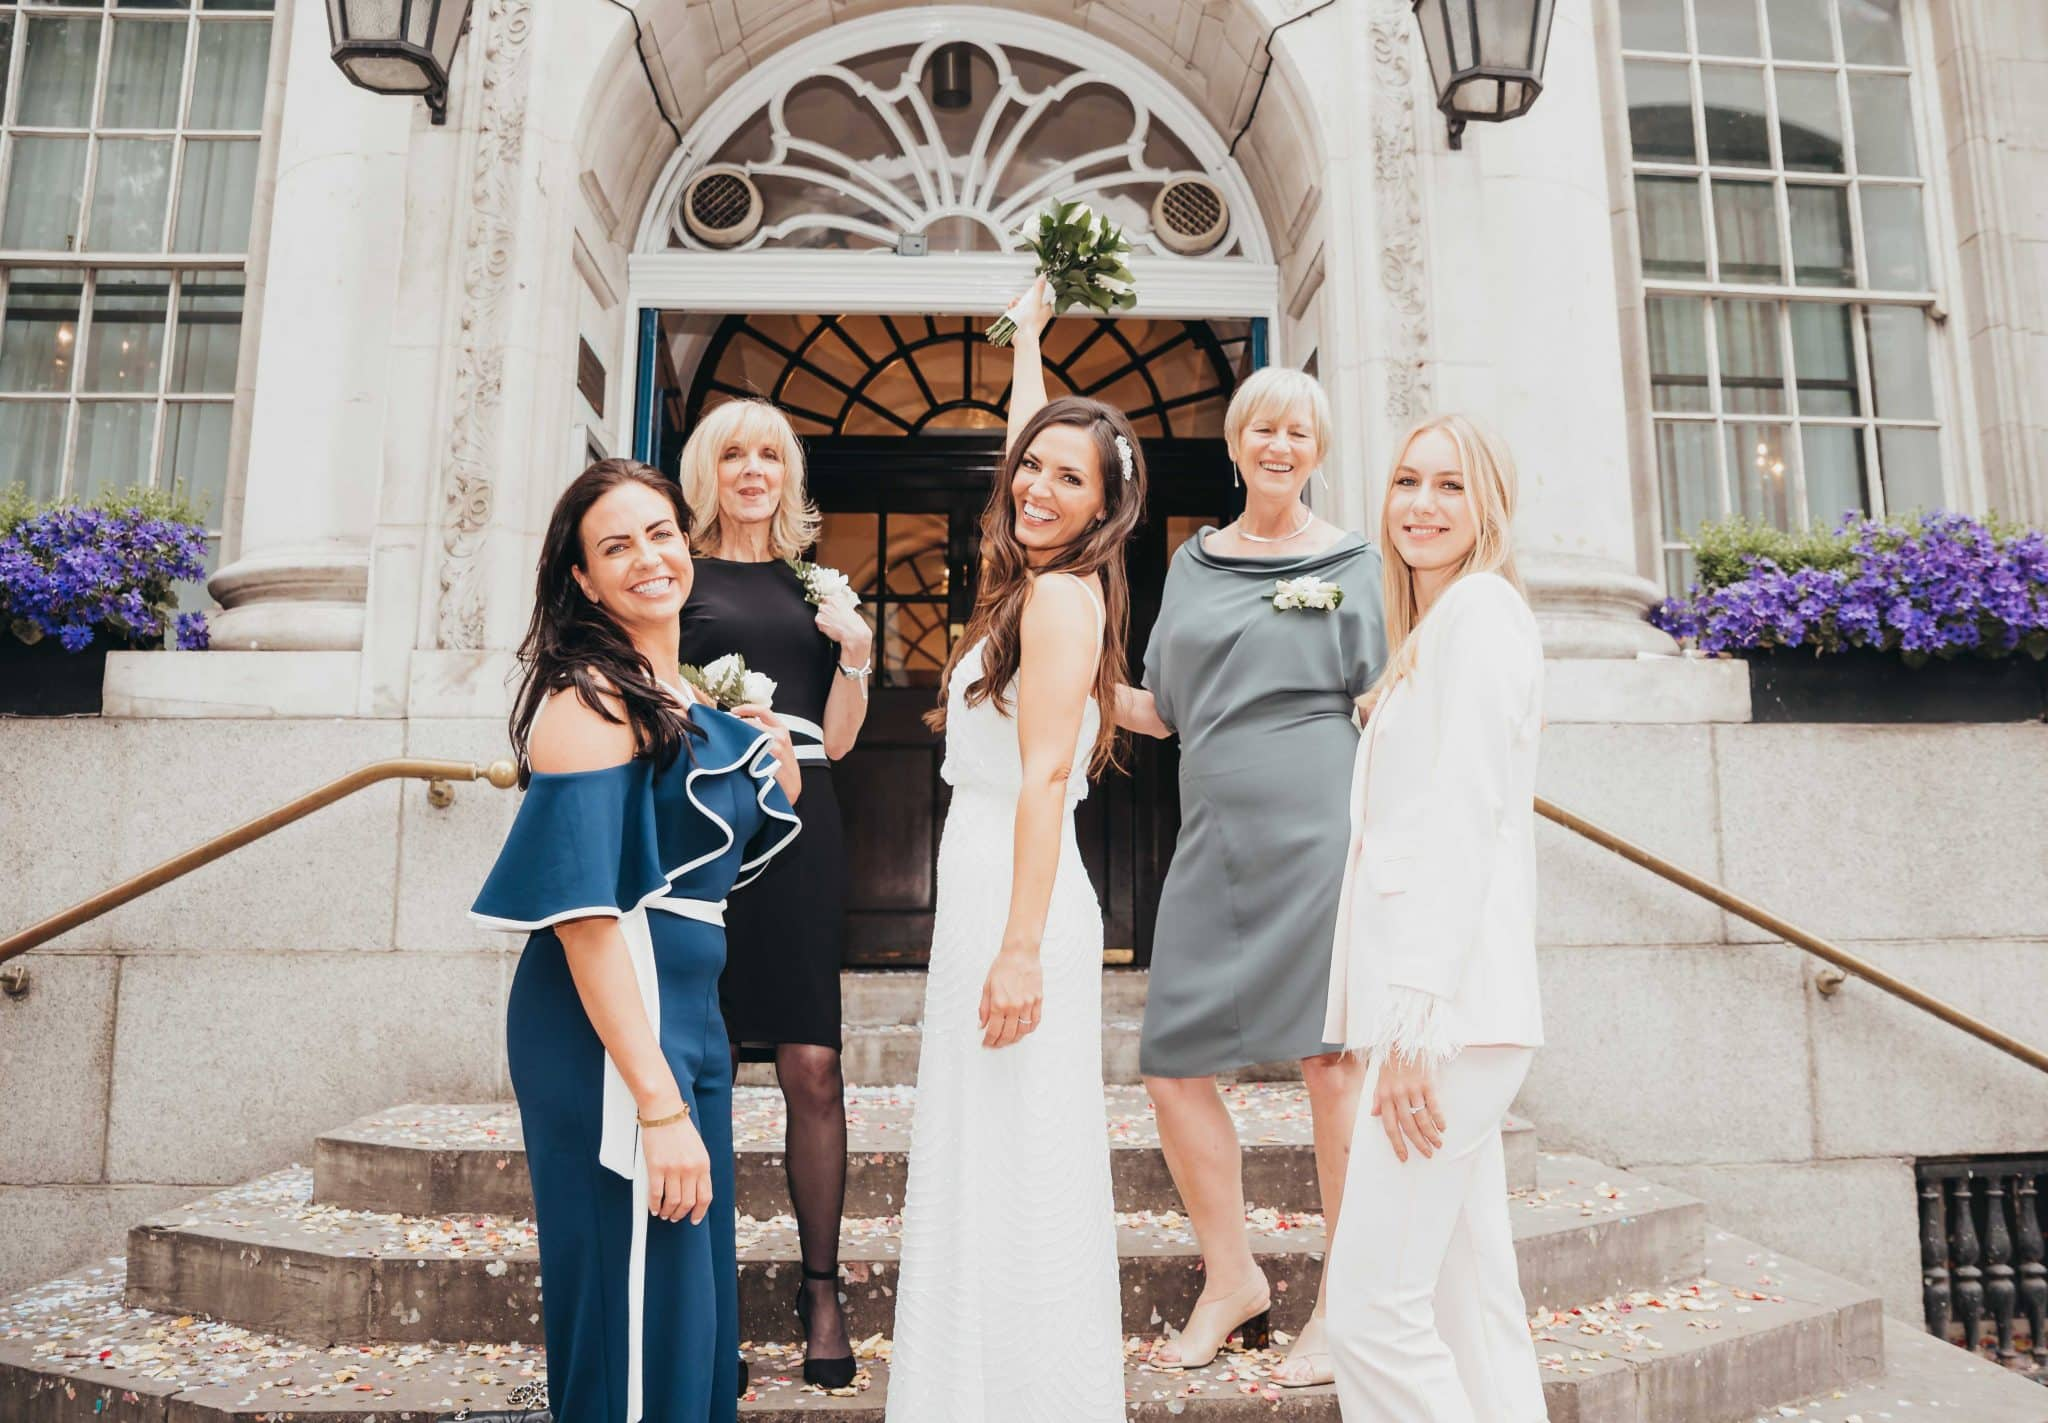 Married couple at the registry office, bride and the bridesmaids with the bouquet,